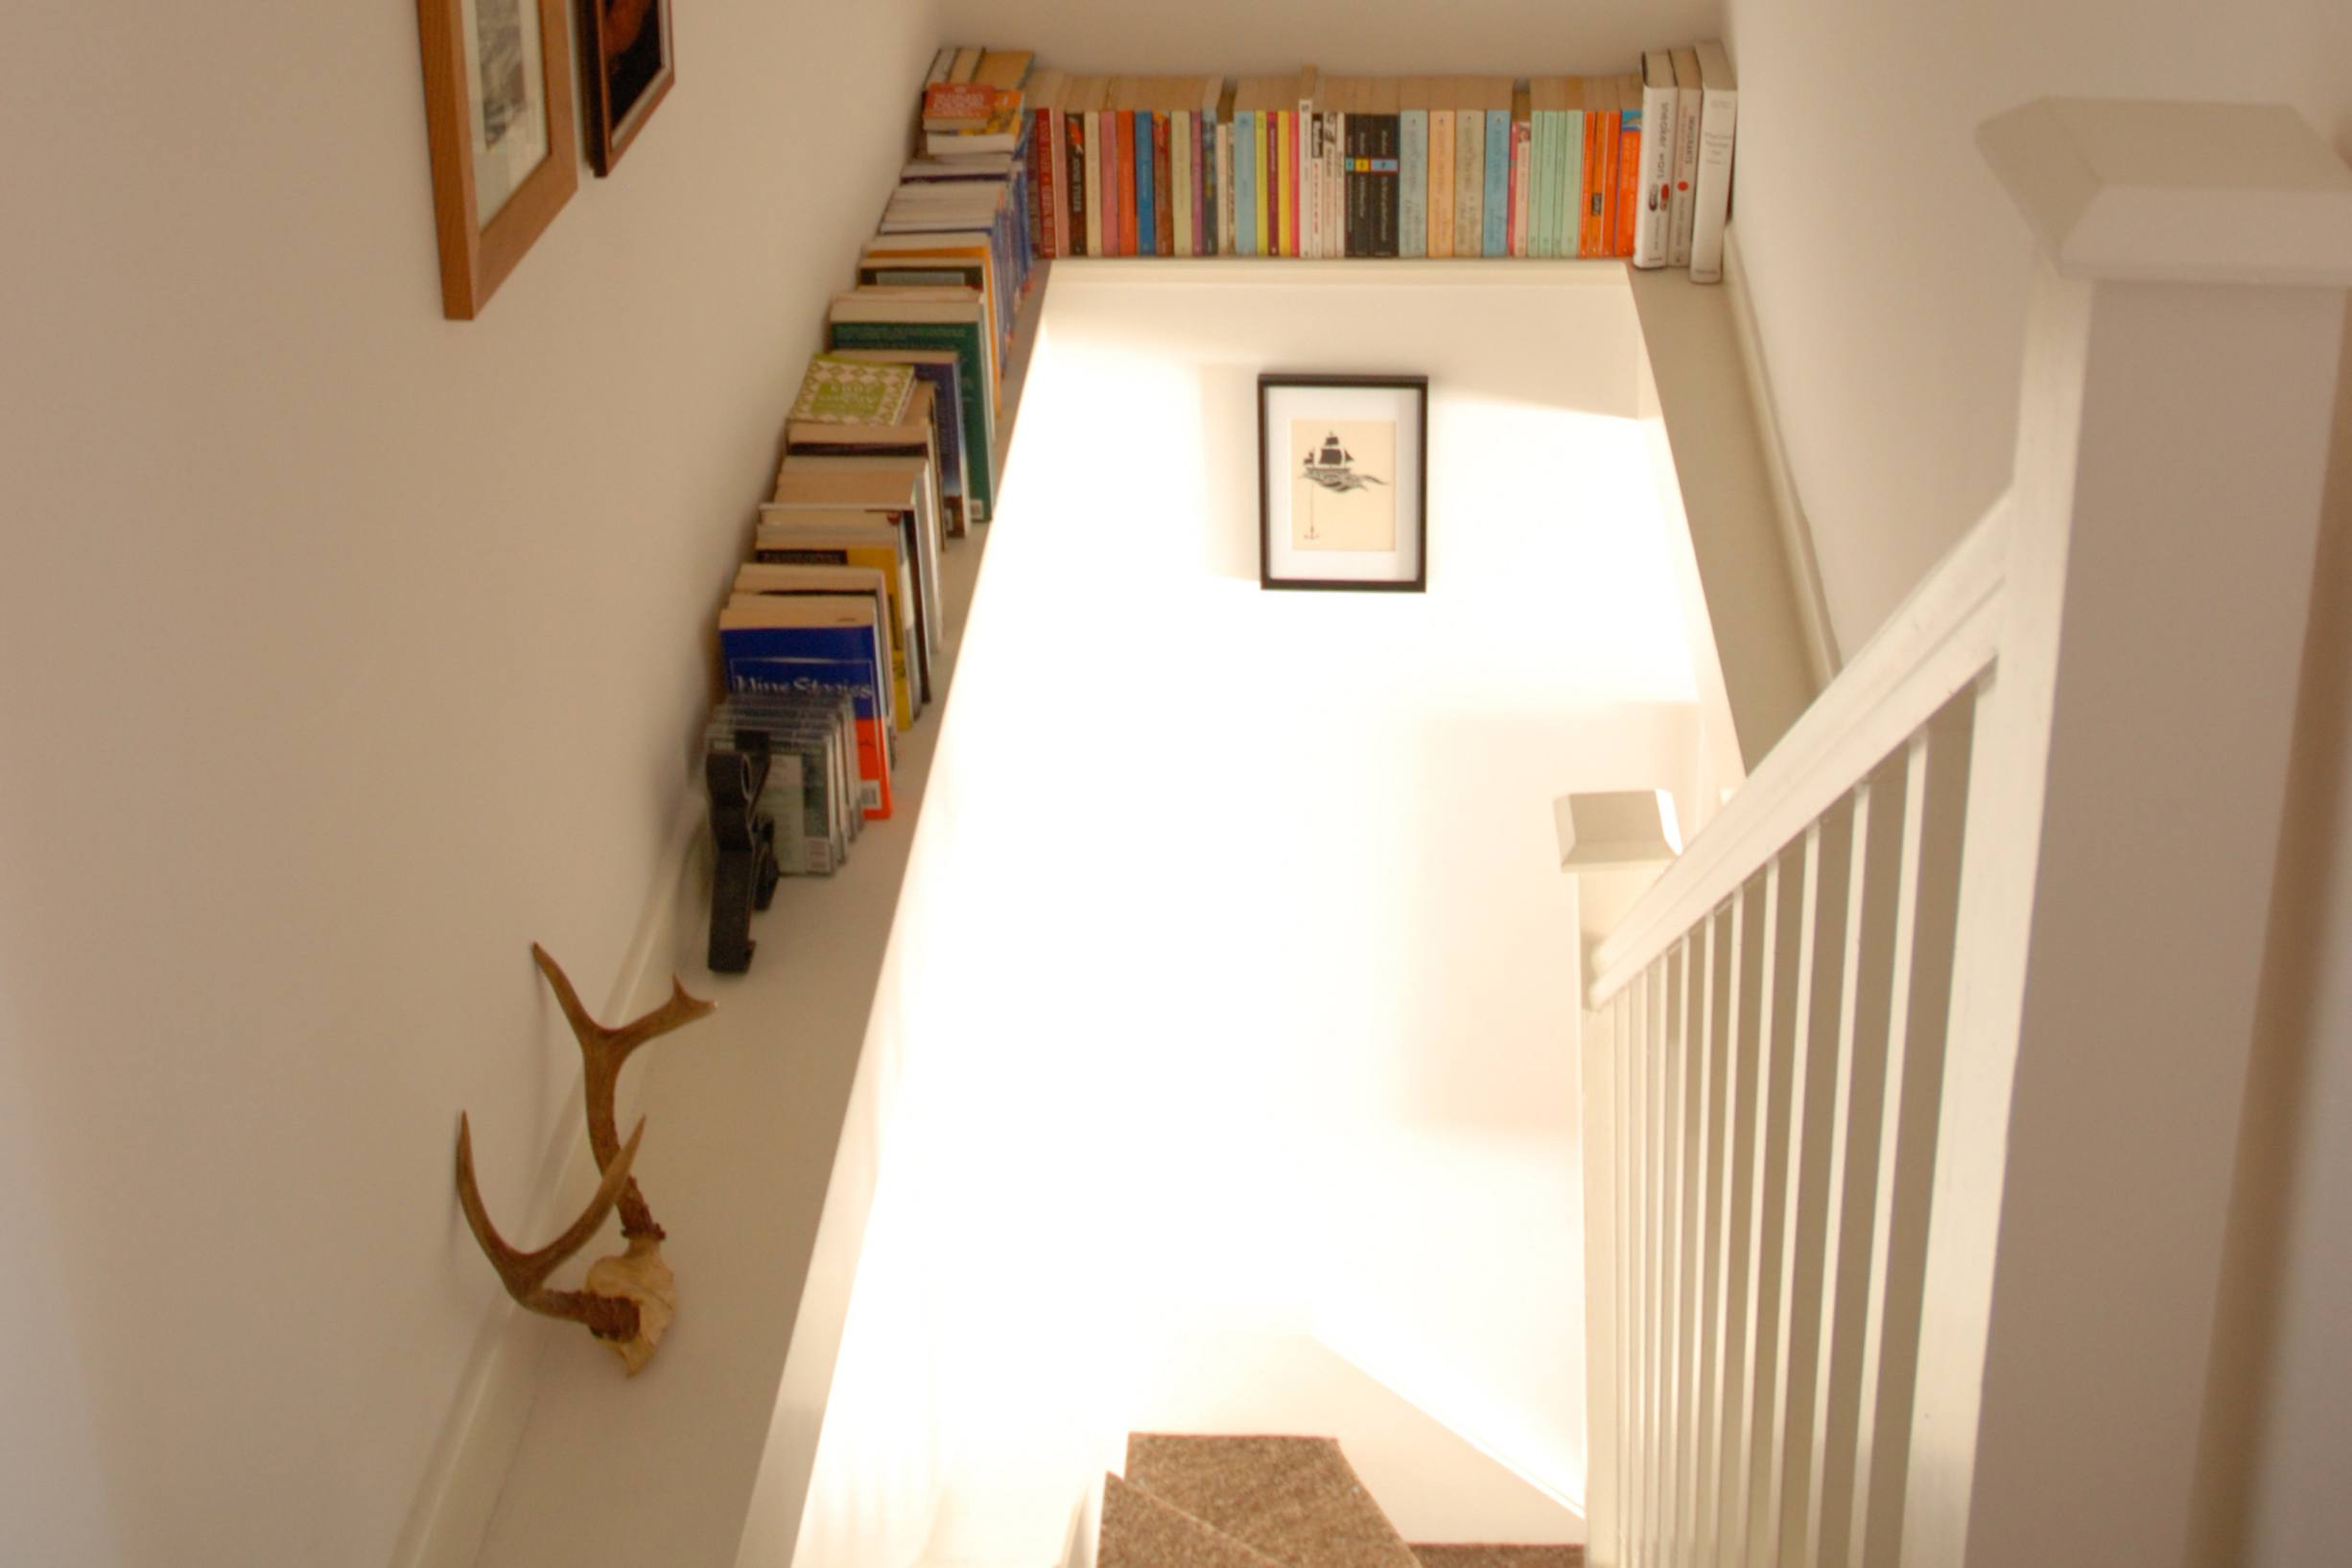 Books-Stored-over-staircase